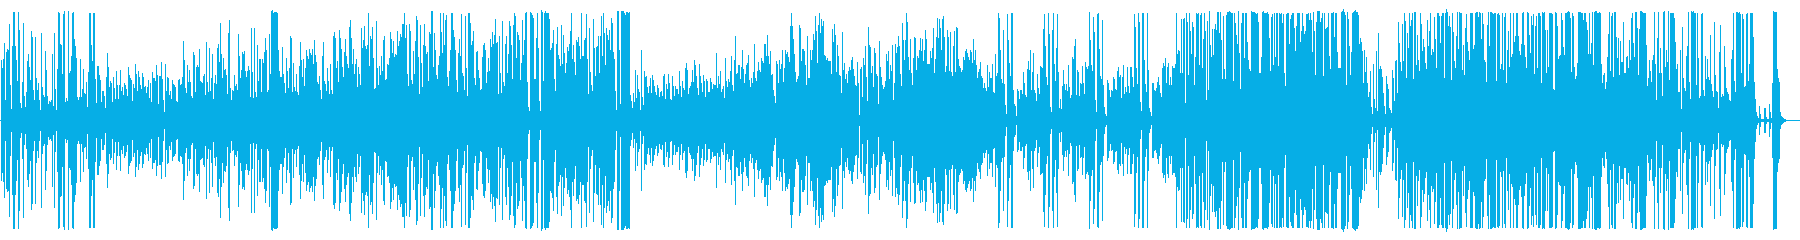 Middle tempo bright big band songs's reproduced waveform